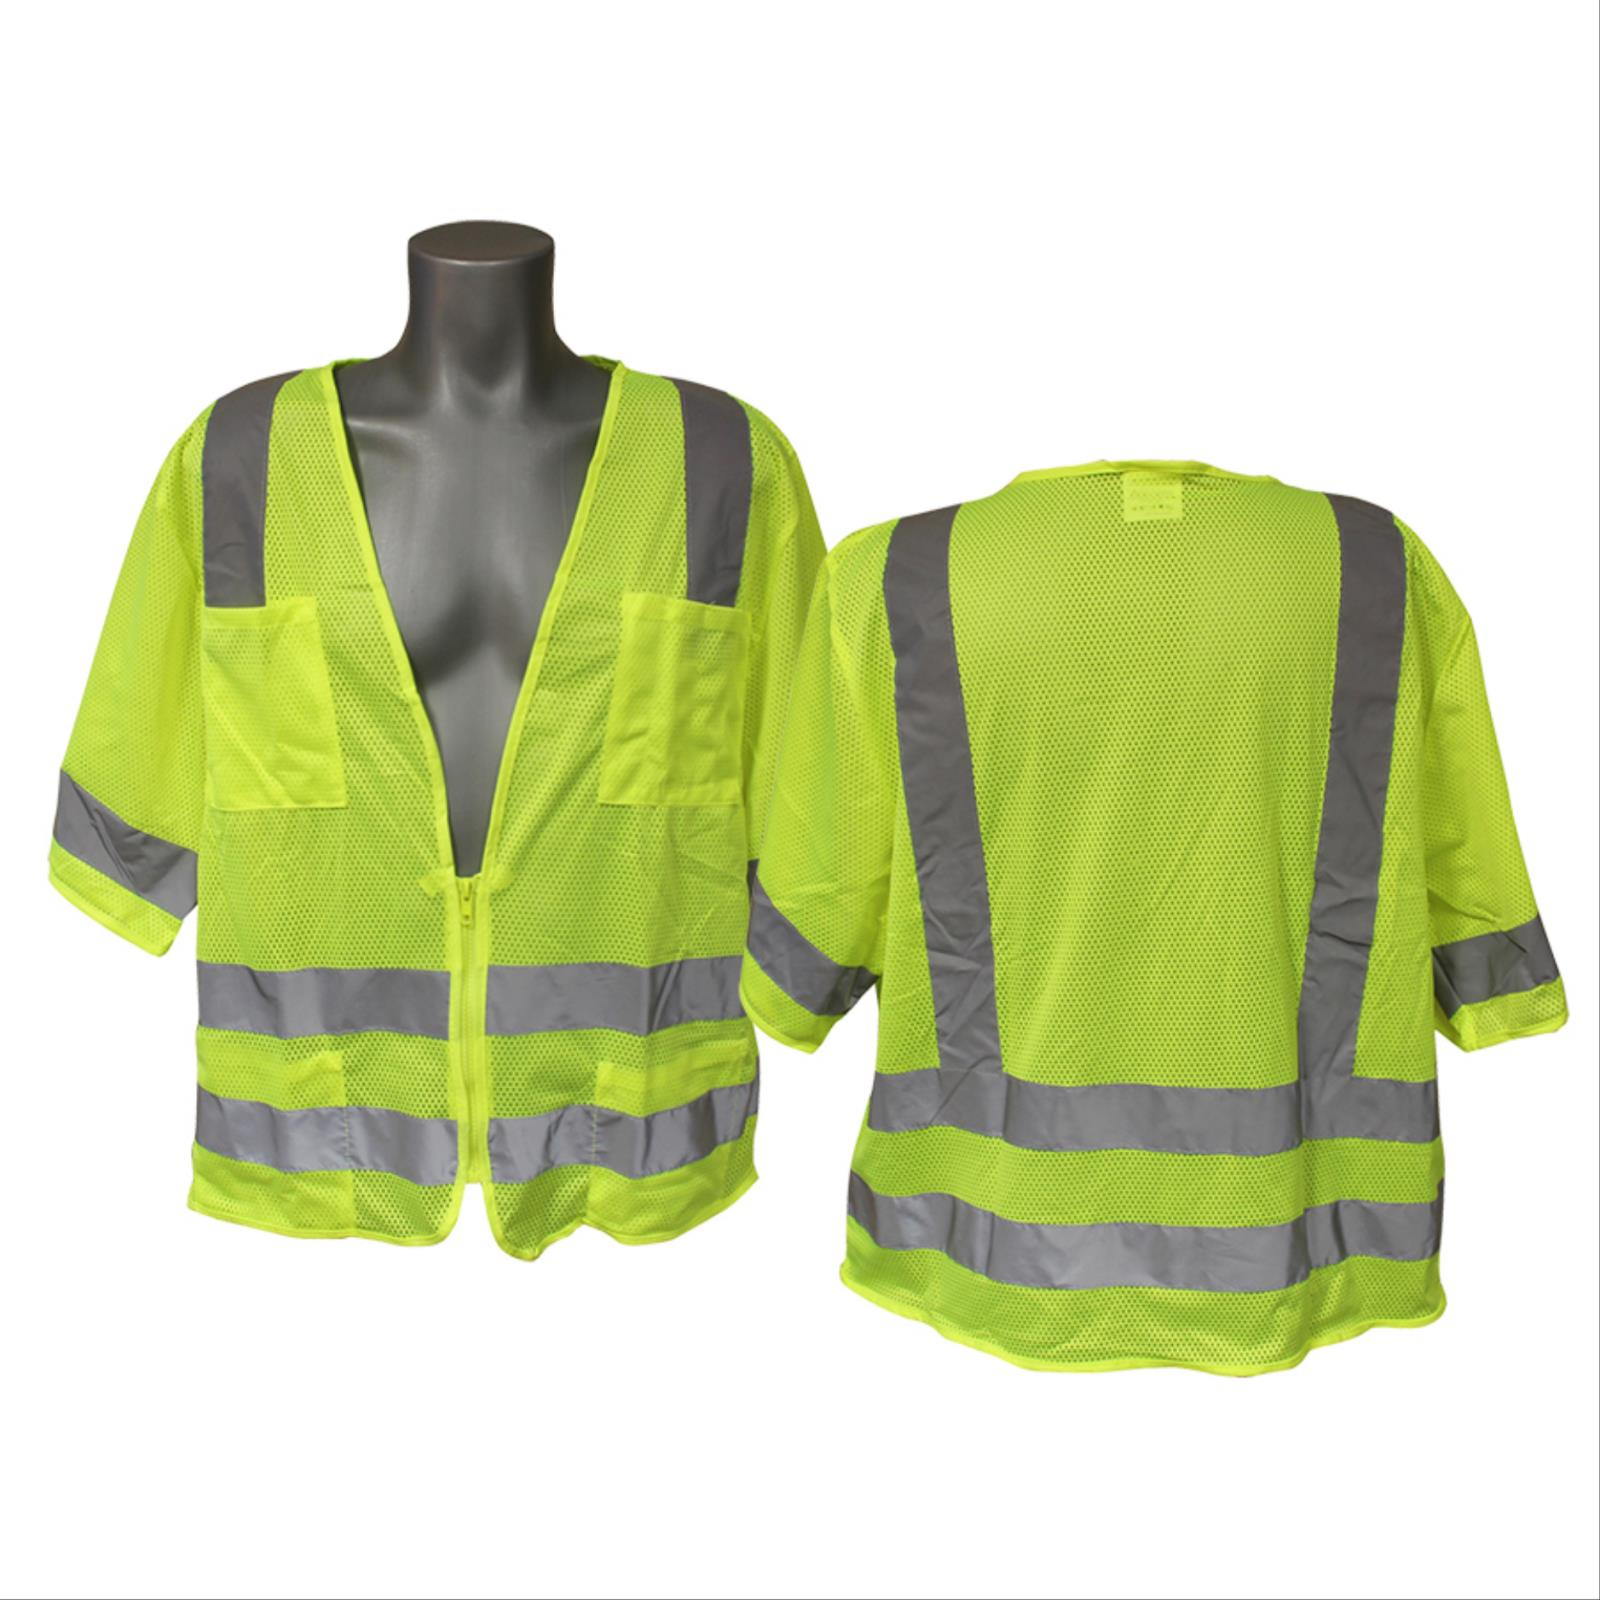 Mesh Safety Vest with Zipper Closure, Class 3 Type R